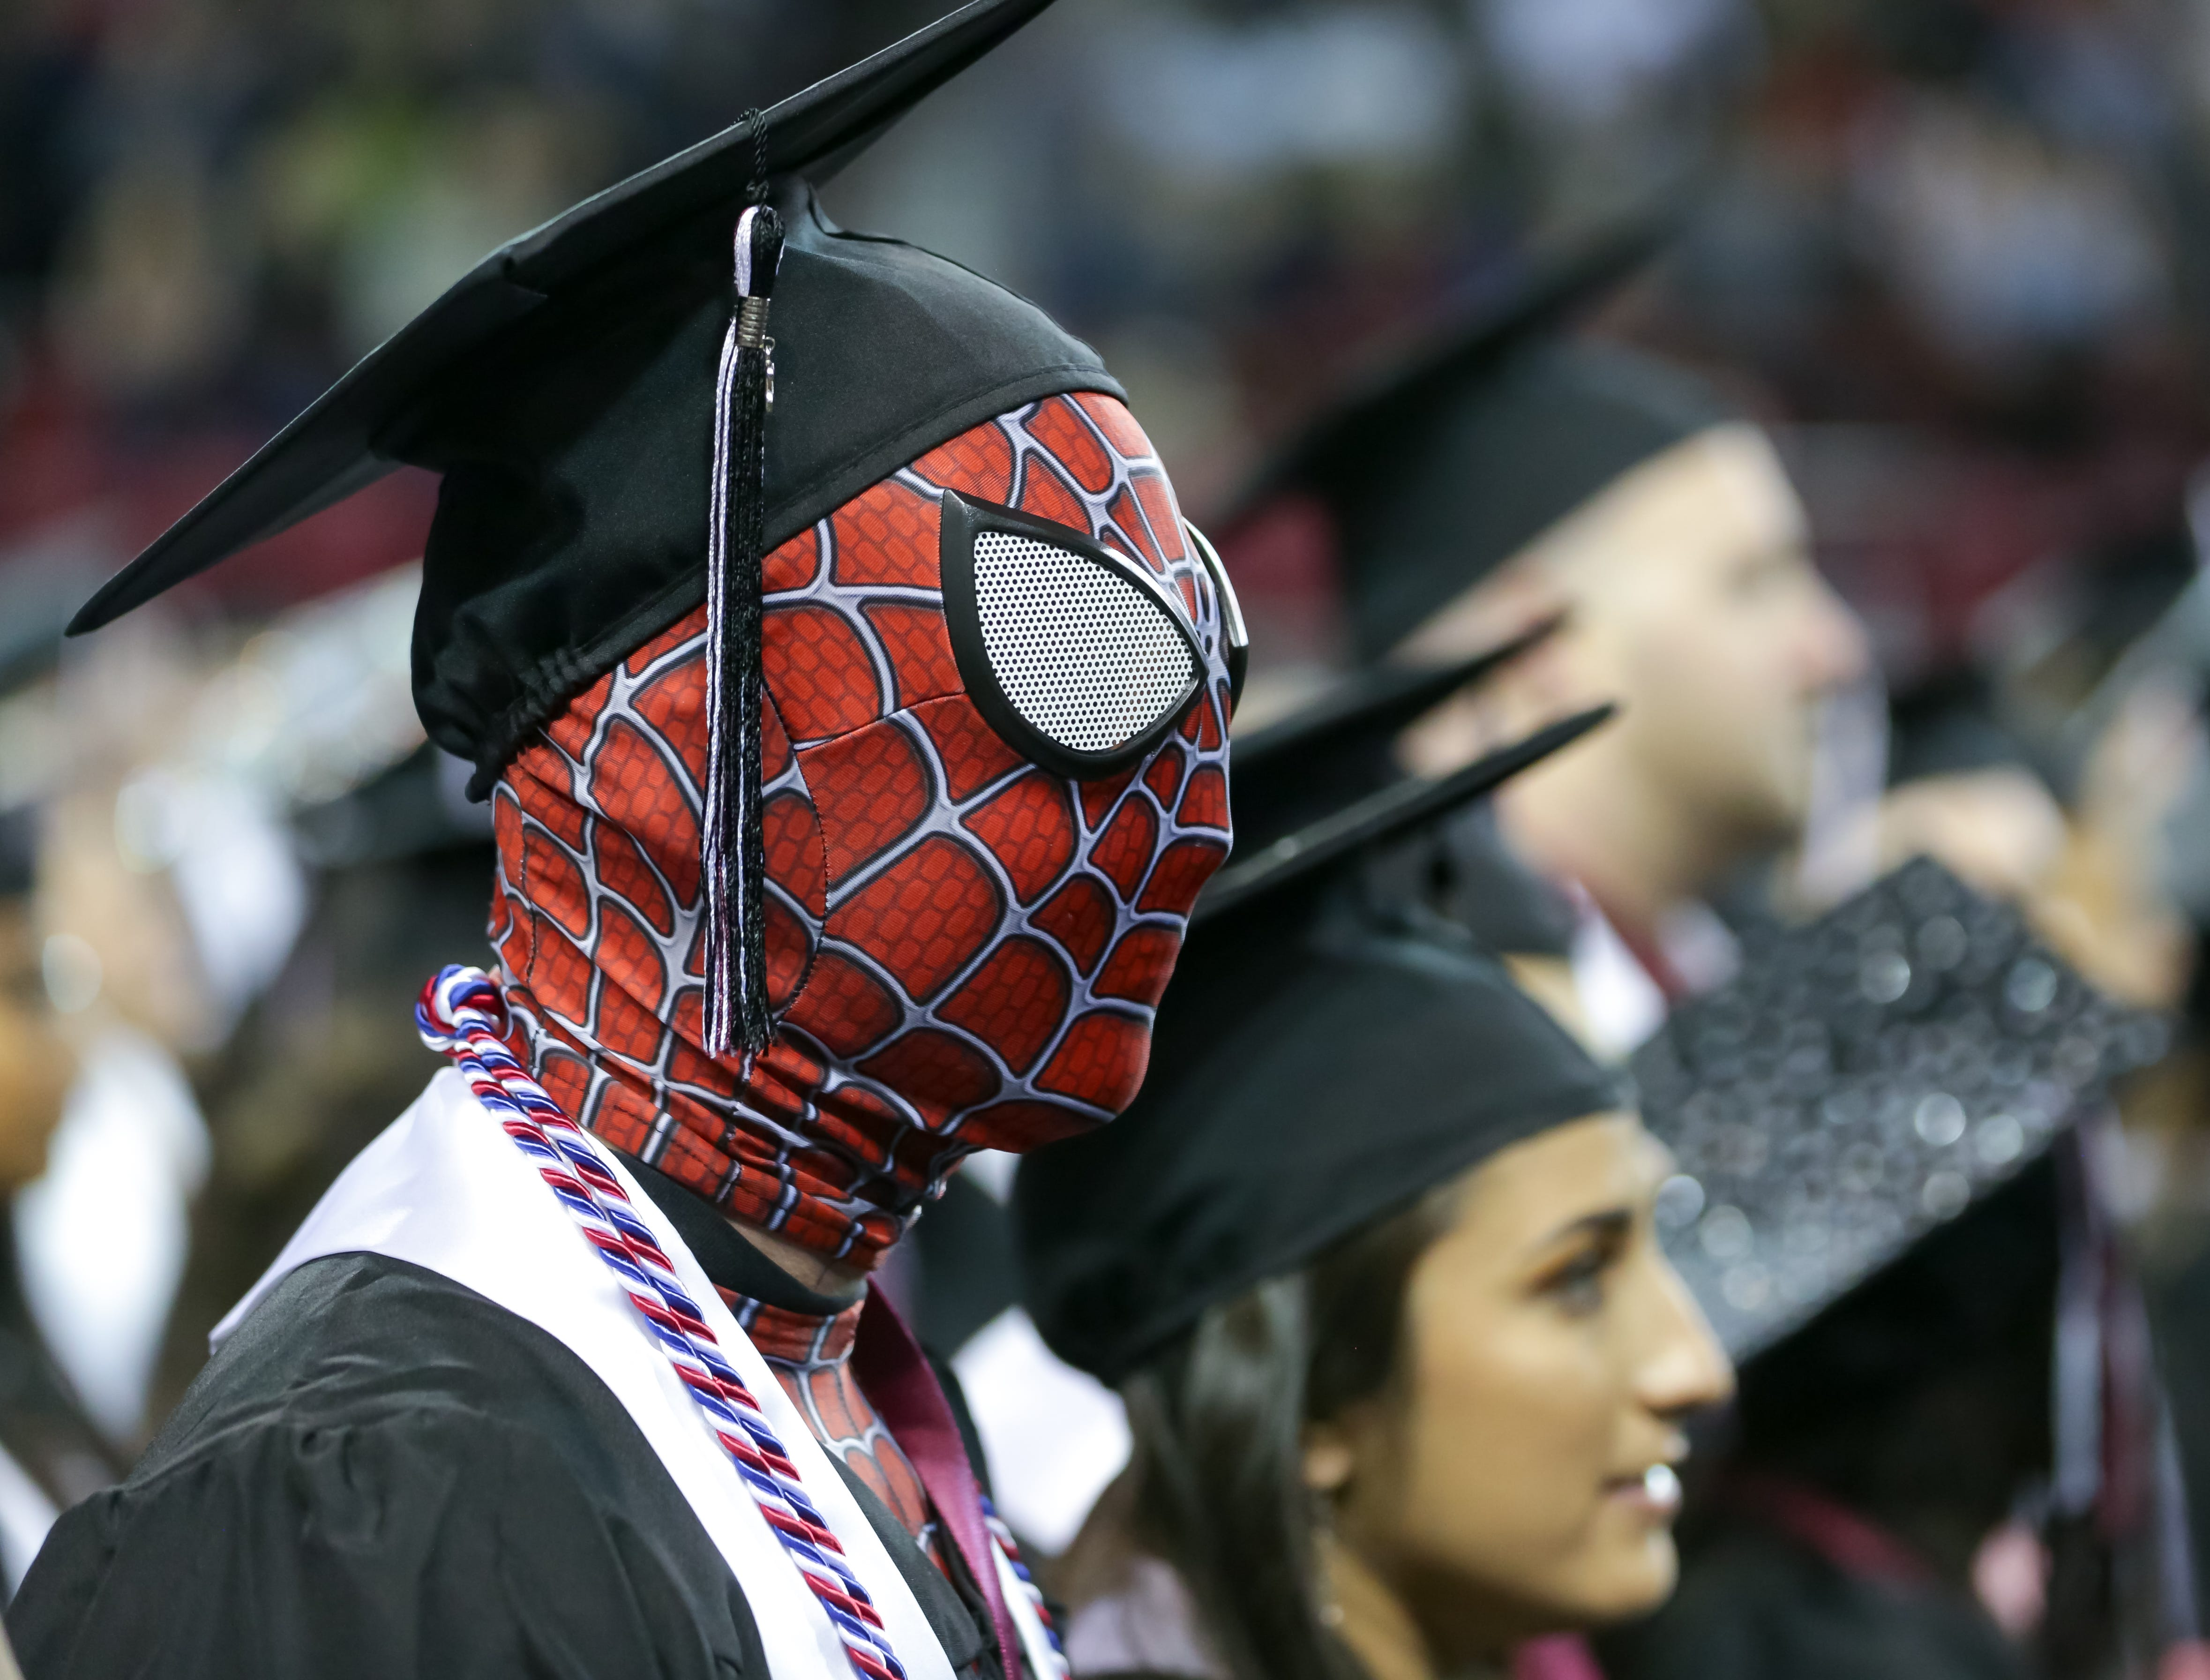 Spenser Tucker dresses as Spiderman during the NMSU commencement ceremoney on Saturday, Dec. 8, 2018 at the Pan American Center.